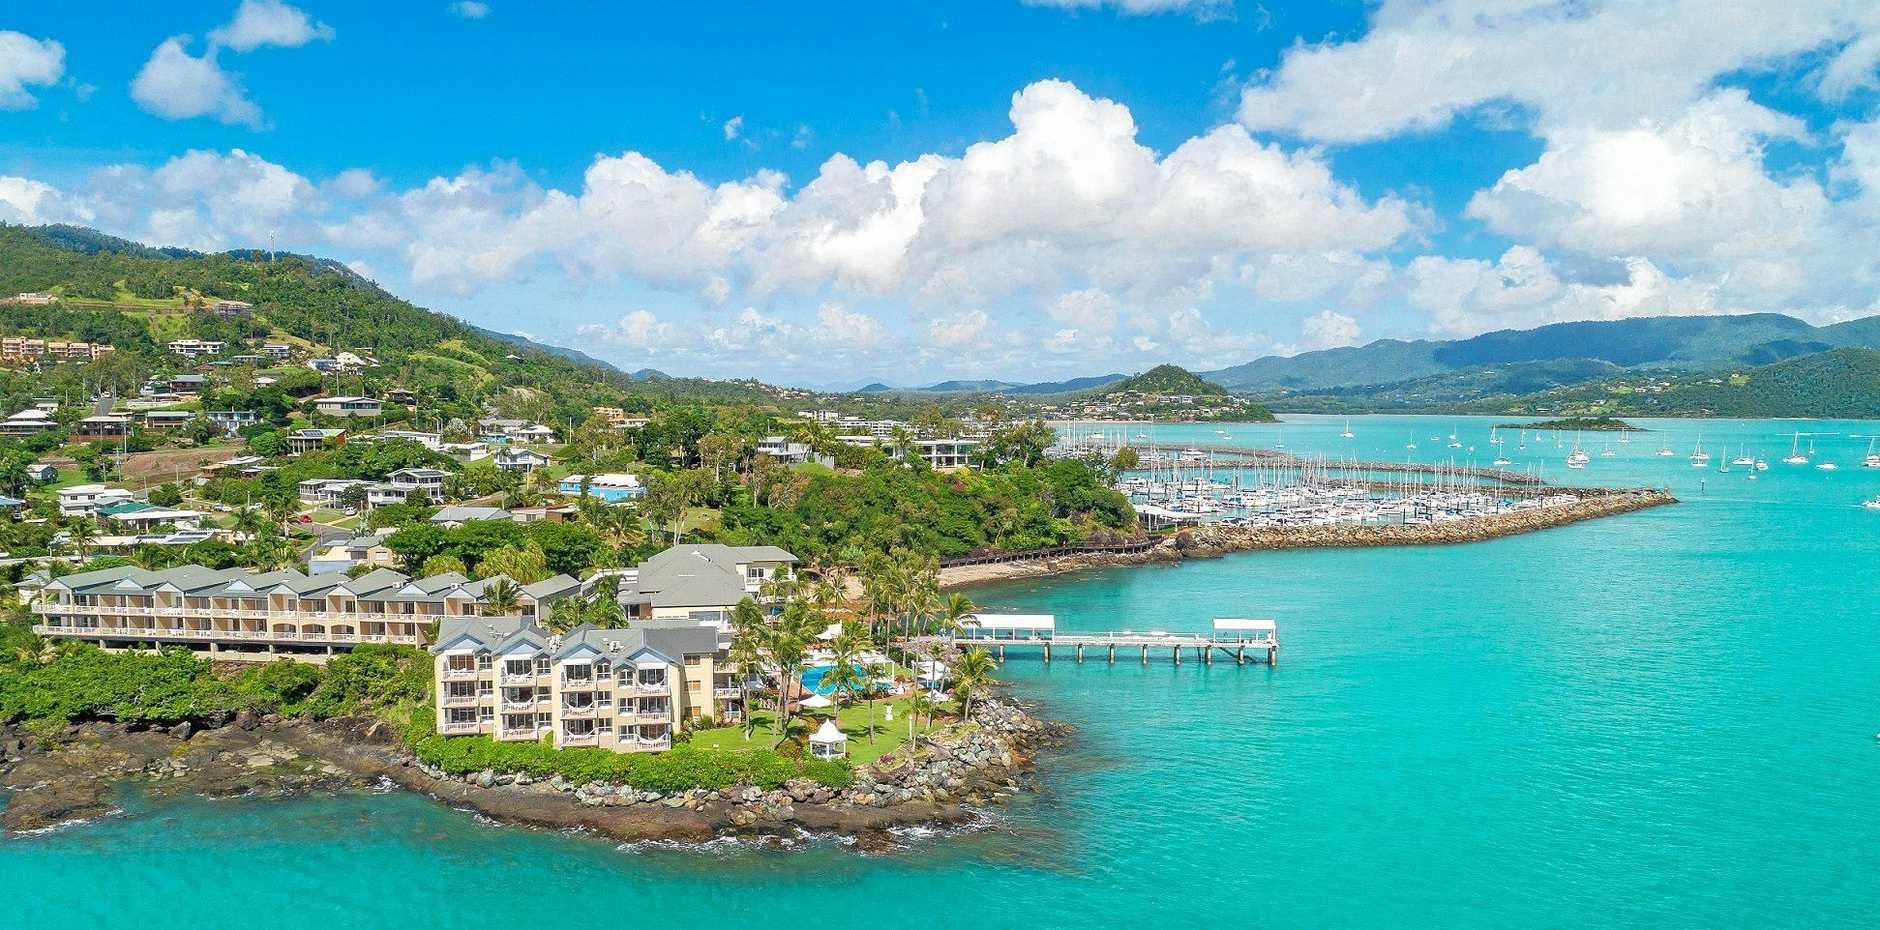 The new name of the Coral Sea Marina Resort will come into effect on July 1.